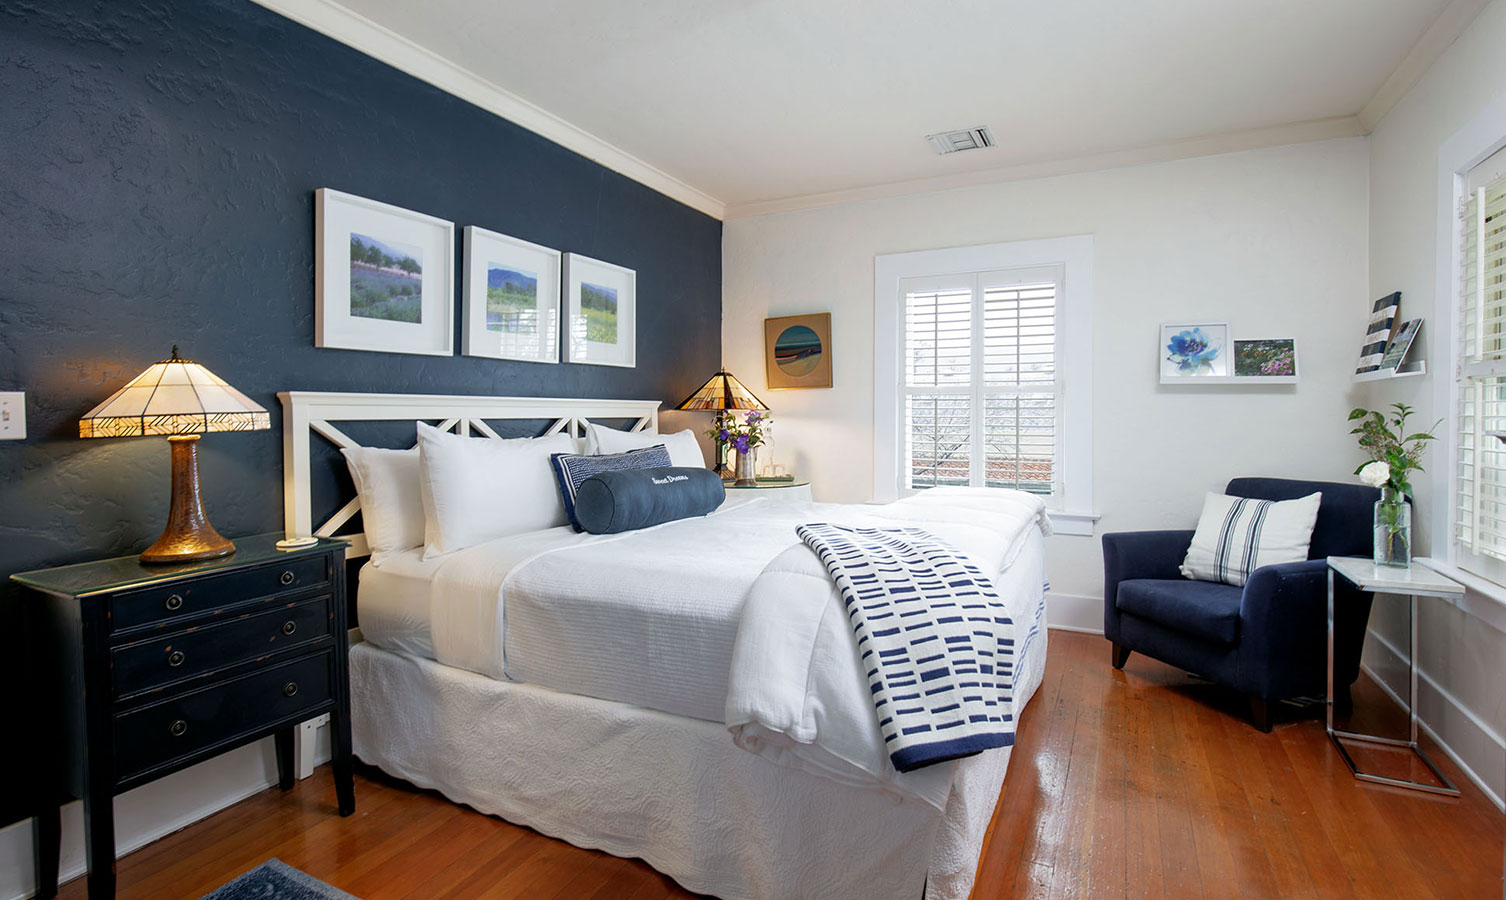 Rooms and amenities at Ojai, CA/Lavender Inn, bed and breakfast